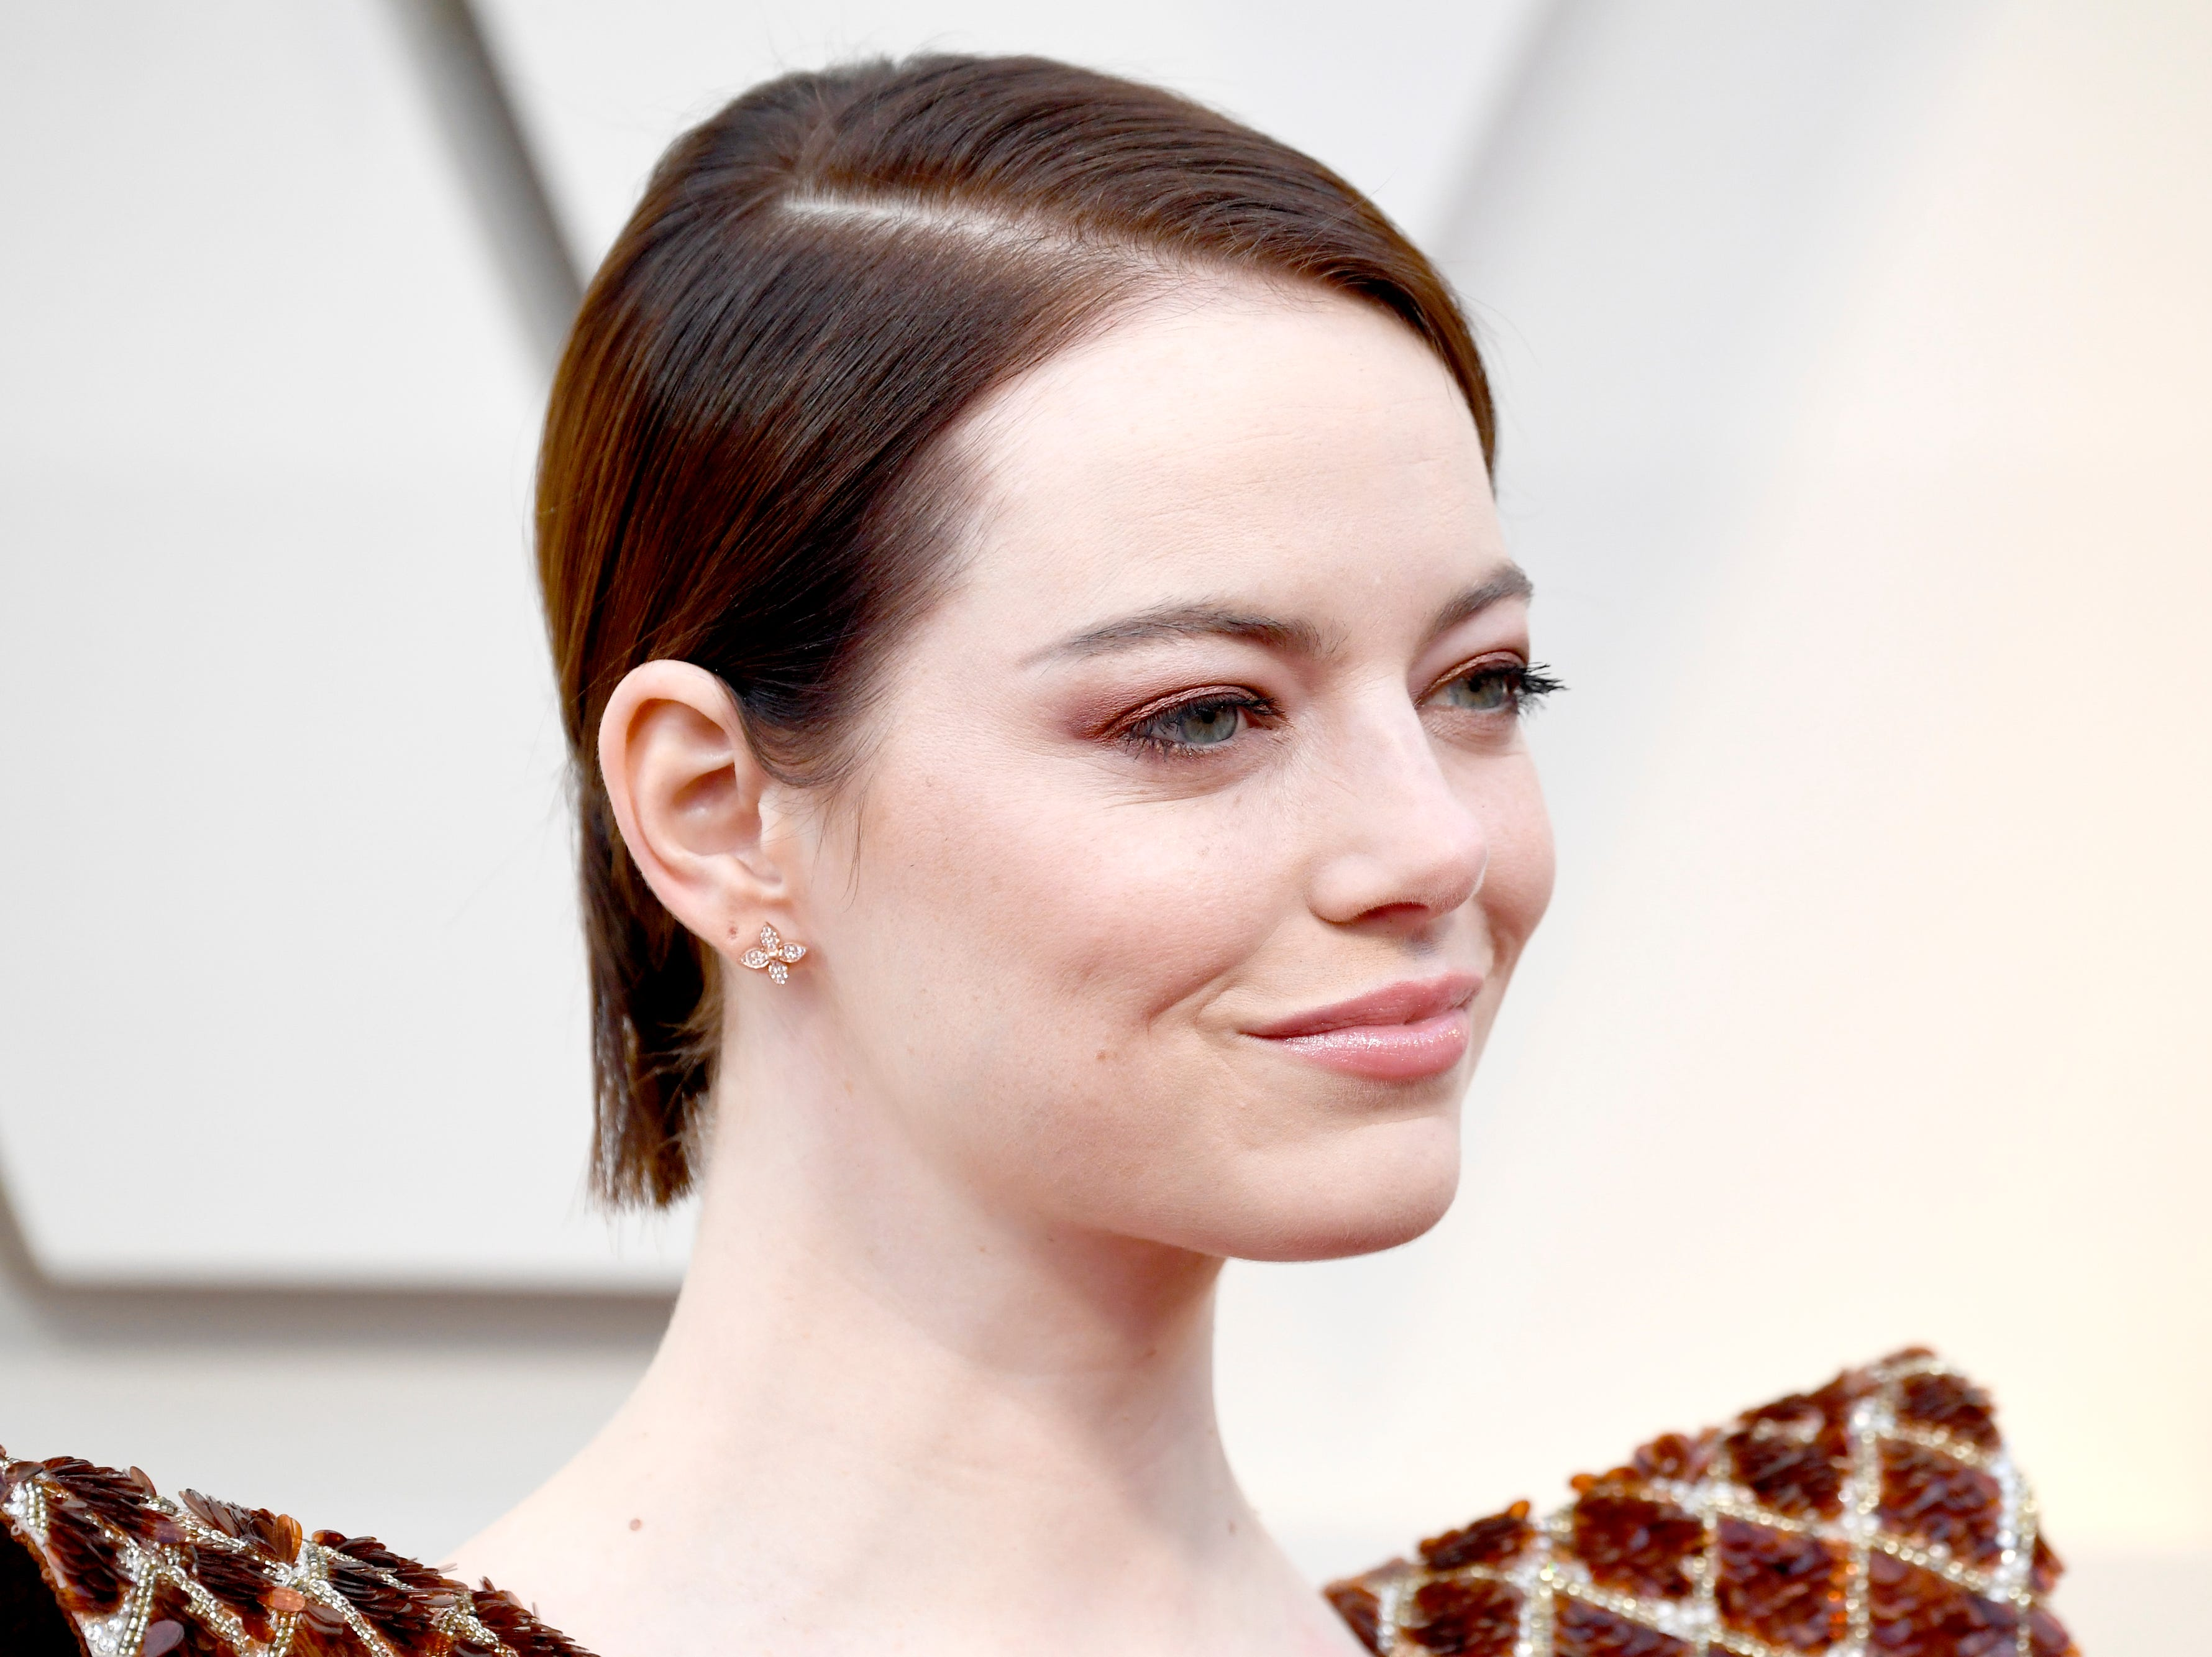 Emma Stone attends the 91st Annual Academy Awards on Feb. 24, 2019, in Hollywood, California.